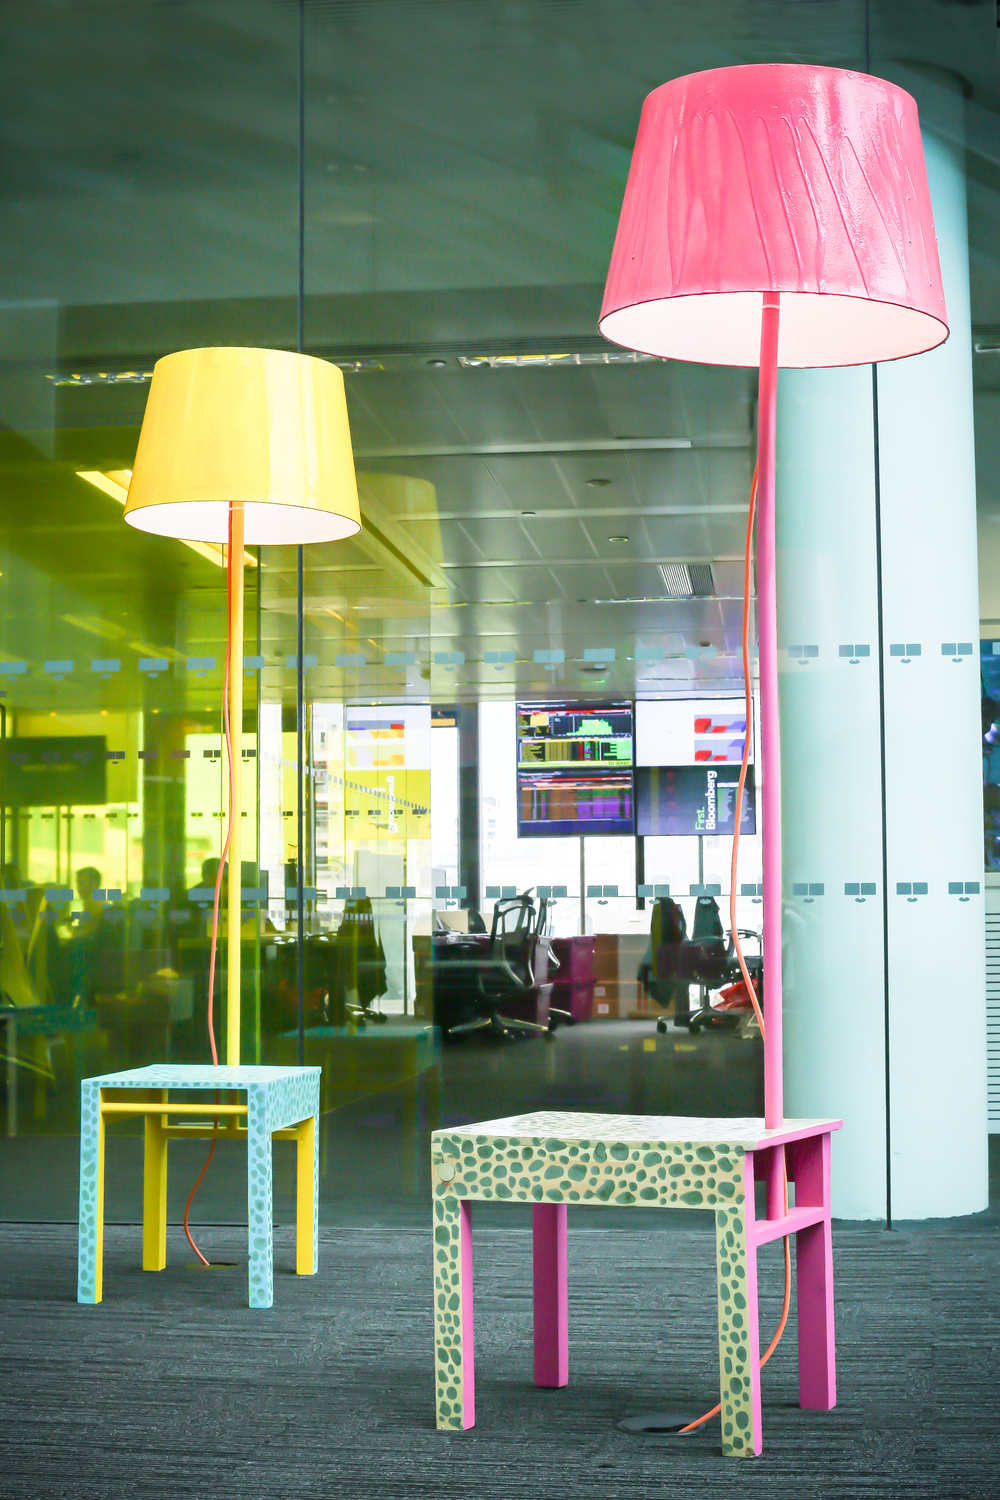 ACID SAFARI for Bloomberg Waste Not Wanted 4, 2013 Lounge area installation of 20 furniture pieces for Bloomberg HQ, London. In ACID SAFARI Eelko Moorer confronts the office environment with an expressive outing of the personal and tactile. The installation consists of stools with arm rests, low tables and lights;  all of which are functional, but whose aesthetic language embodies a playful, tactile, somewhat absurd animalistic nature.  Moorer cites Atiz Rezistance, J-M Basquiat, Alchymia, and animism as influences.  The functional objects are enlivened by the patterns manually crafted into their surfaces, and the bright pigments dyed into them.  Screened furnishings are positioned in the middle of the room and on closer inspection reveal a specially commissioned repetitive hypnotic surface animation by Catherine Anyango providing a contemplative centre, or altar, to the installation environment. The work was realised using Bloomberg pallets, discarded computer screens and computers combined with a low-tech approach to making. A level of intricacy is added to the pieces through colourful inlay, patterns and dying. The dimensions of the pieces are as much as possible defined by the size of the pallets, using halves or doubles of this standard unit. The aim was to design different styles and functions of furniture together so to create odd typological hybrids resembling animalistic creatures.